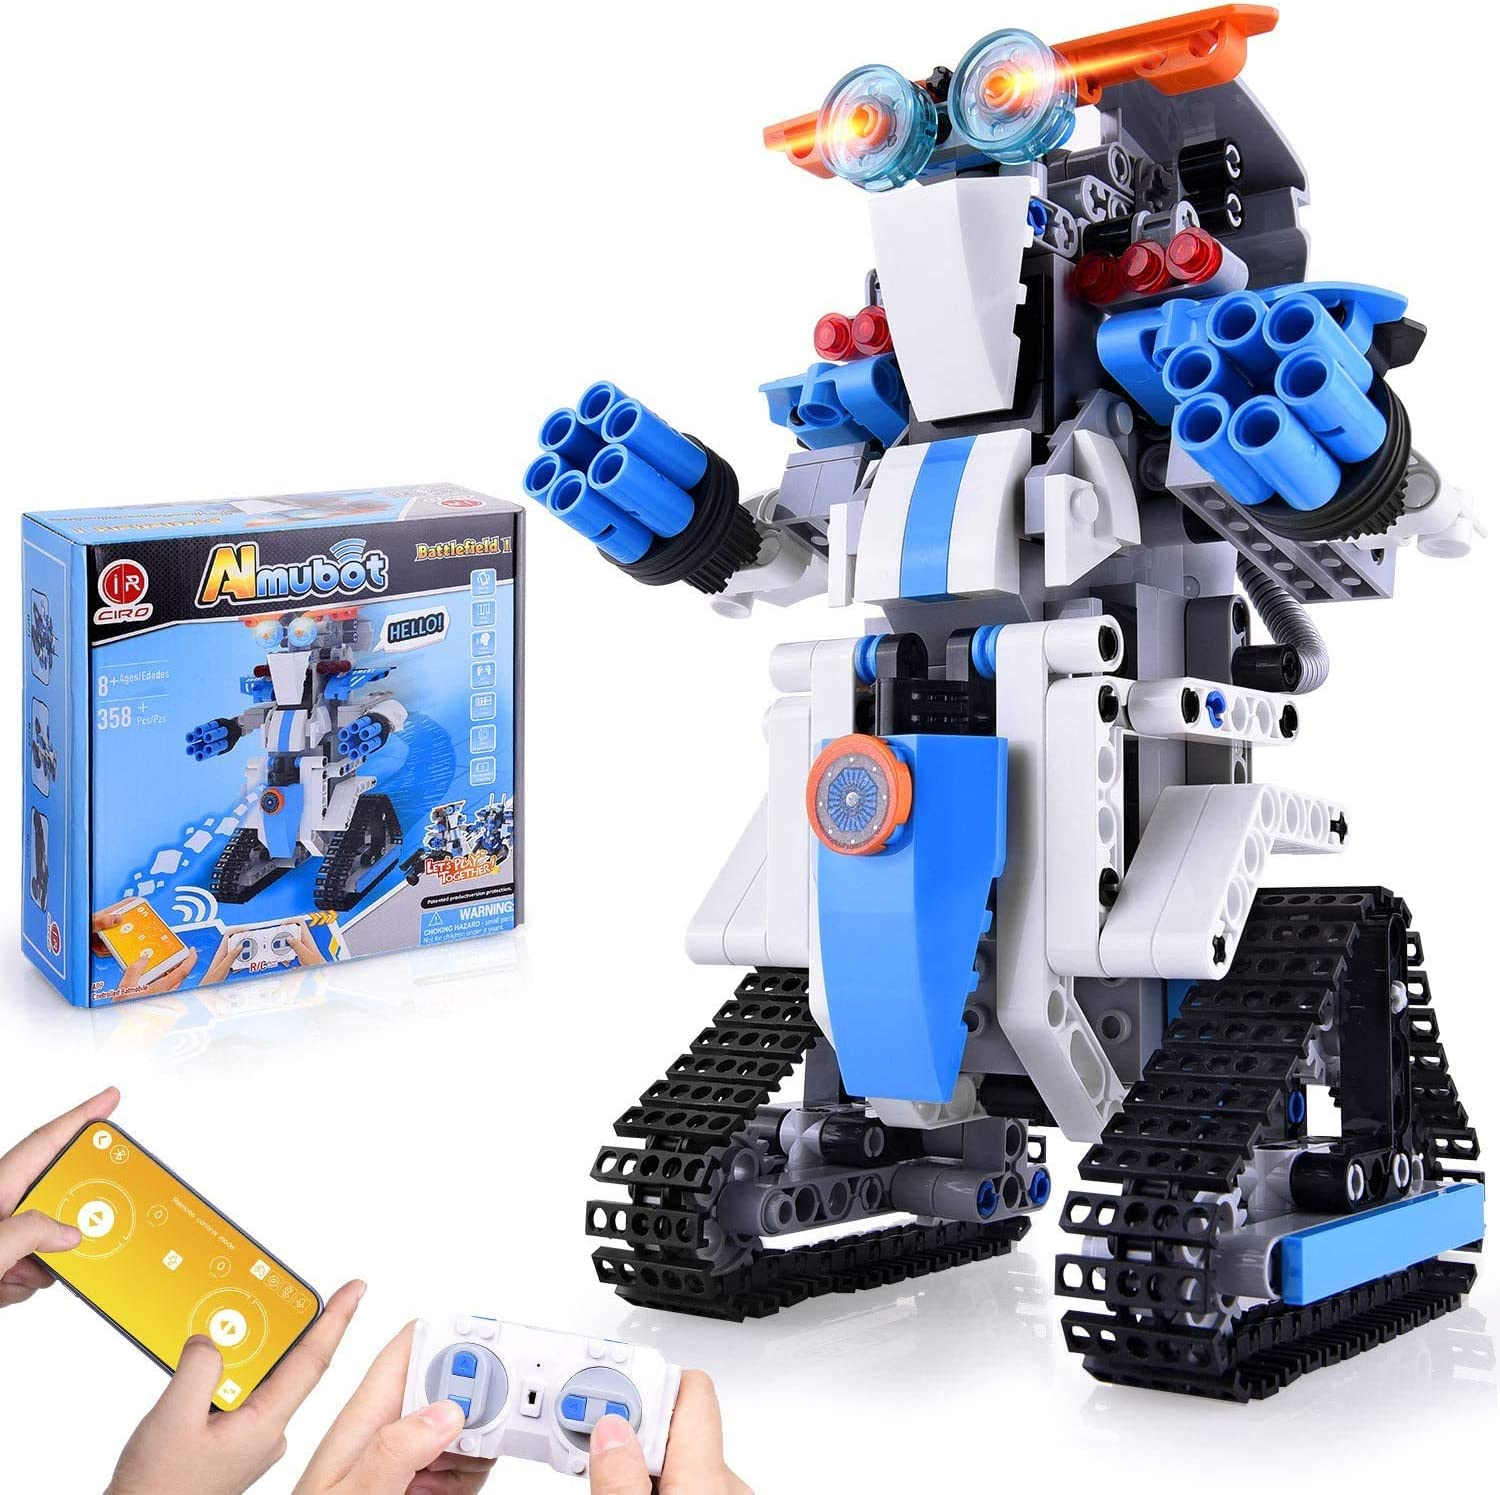 Robot Building Kit, Remote & APP Controlled STEM Learning Educational Science Building Toys for Kids Ages 8+, New 2021 (349 Pieces)